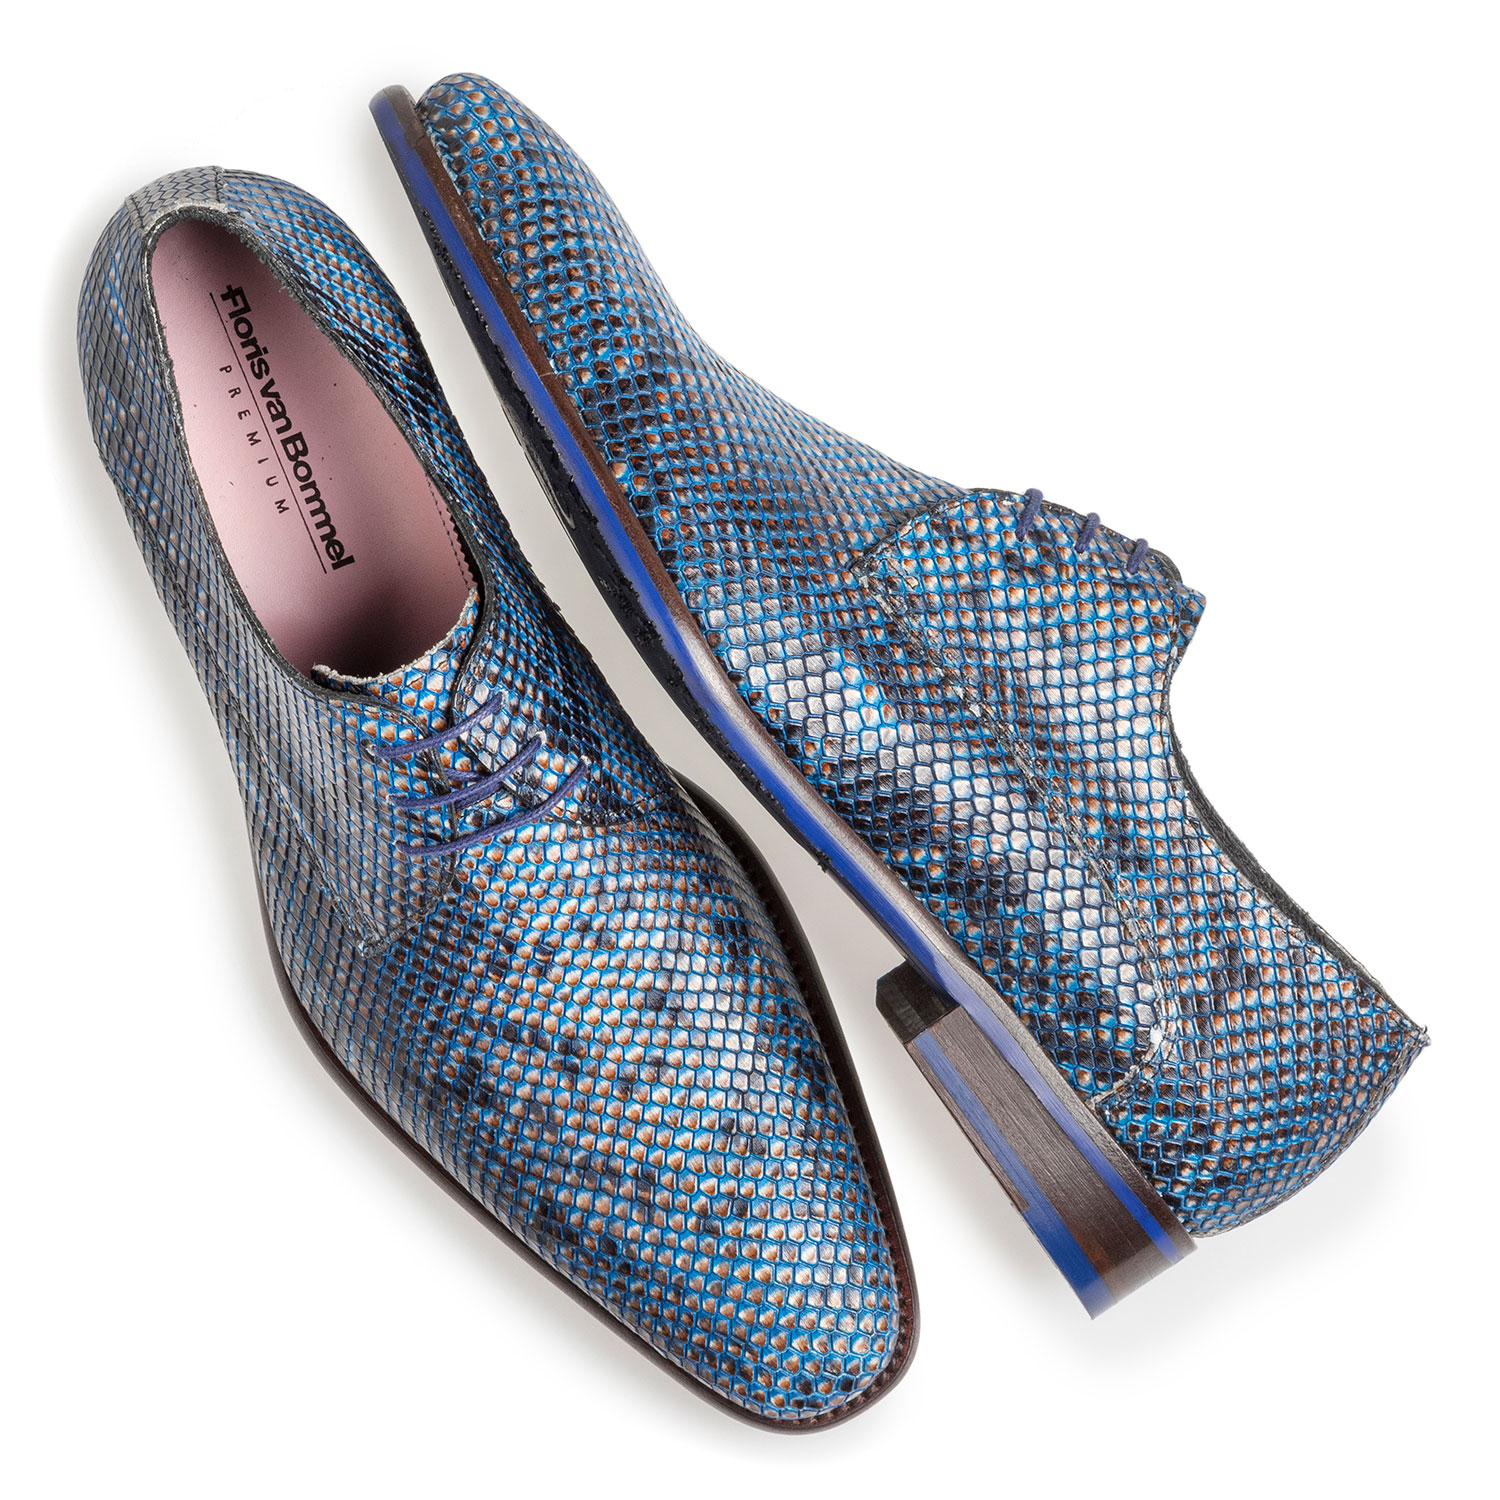 18159/17 - Blue lace shoe with snake print